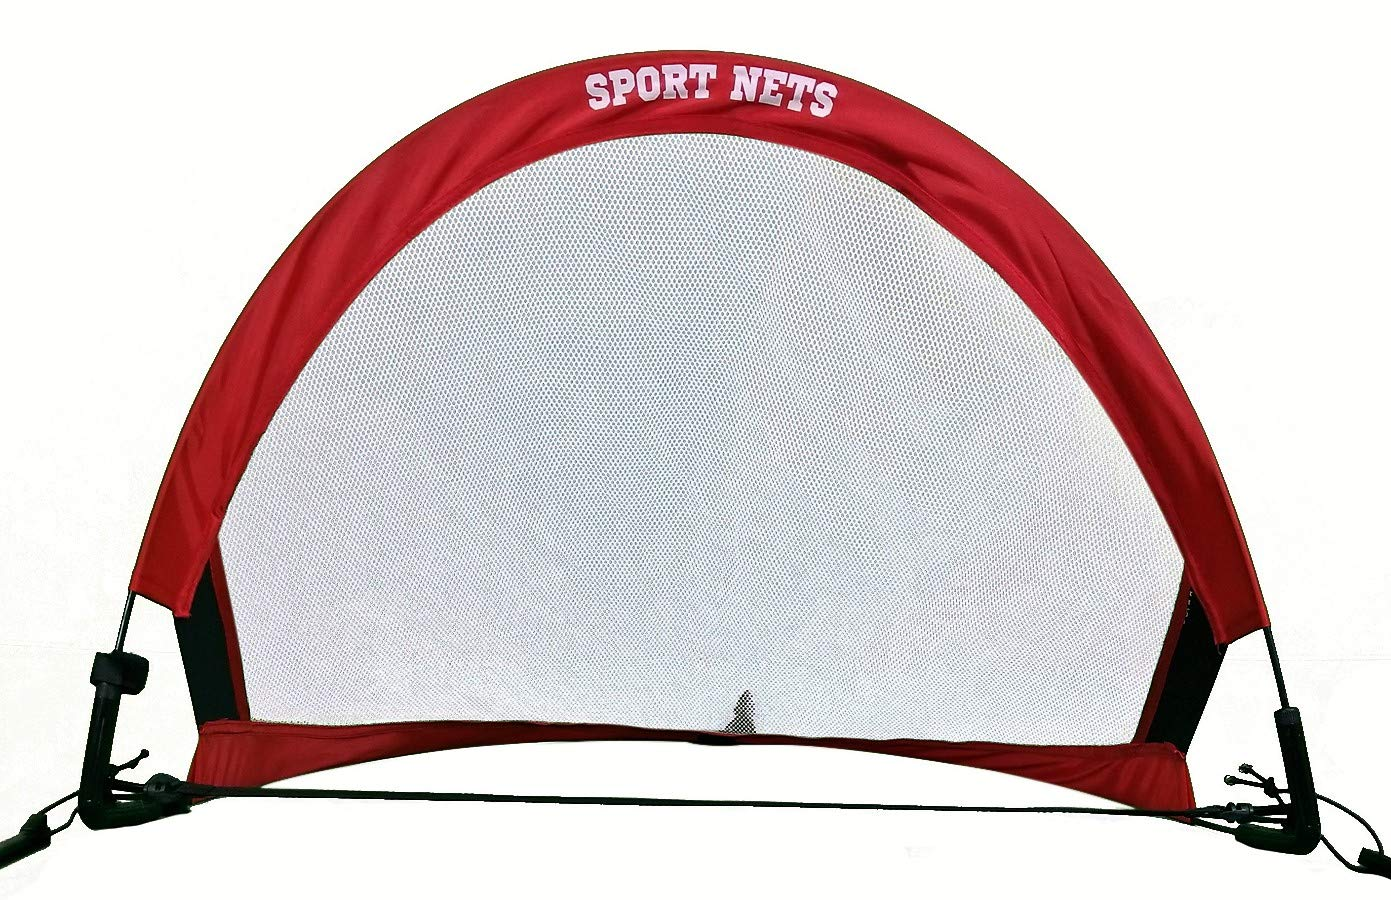 Sport Nets Portable Pop-Up Soccer Goals - Set of Two Soccer Nets with Carry Bag - Portable and Foldable 2.5ft, 4ft and 6ft Size Sets For Kids and Adults Soccer Training (4 FT (Goals & Bag))